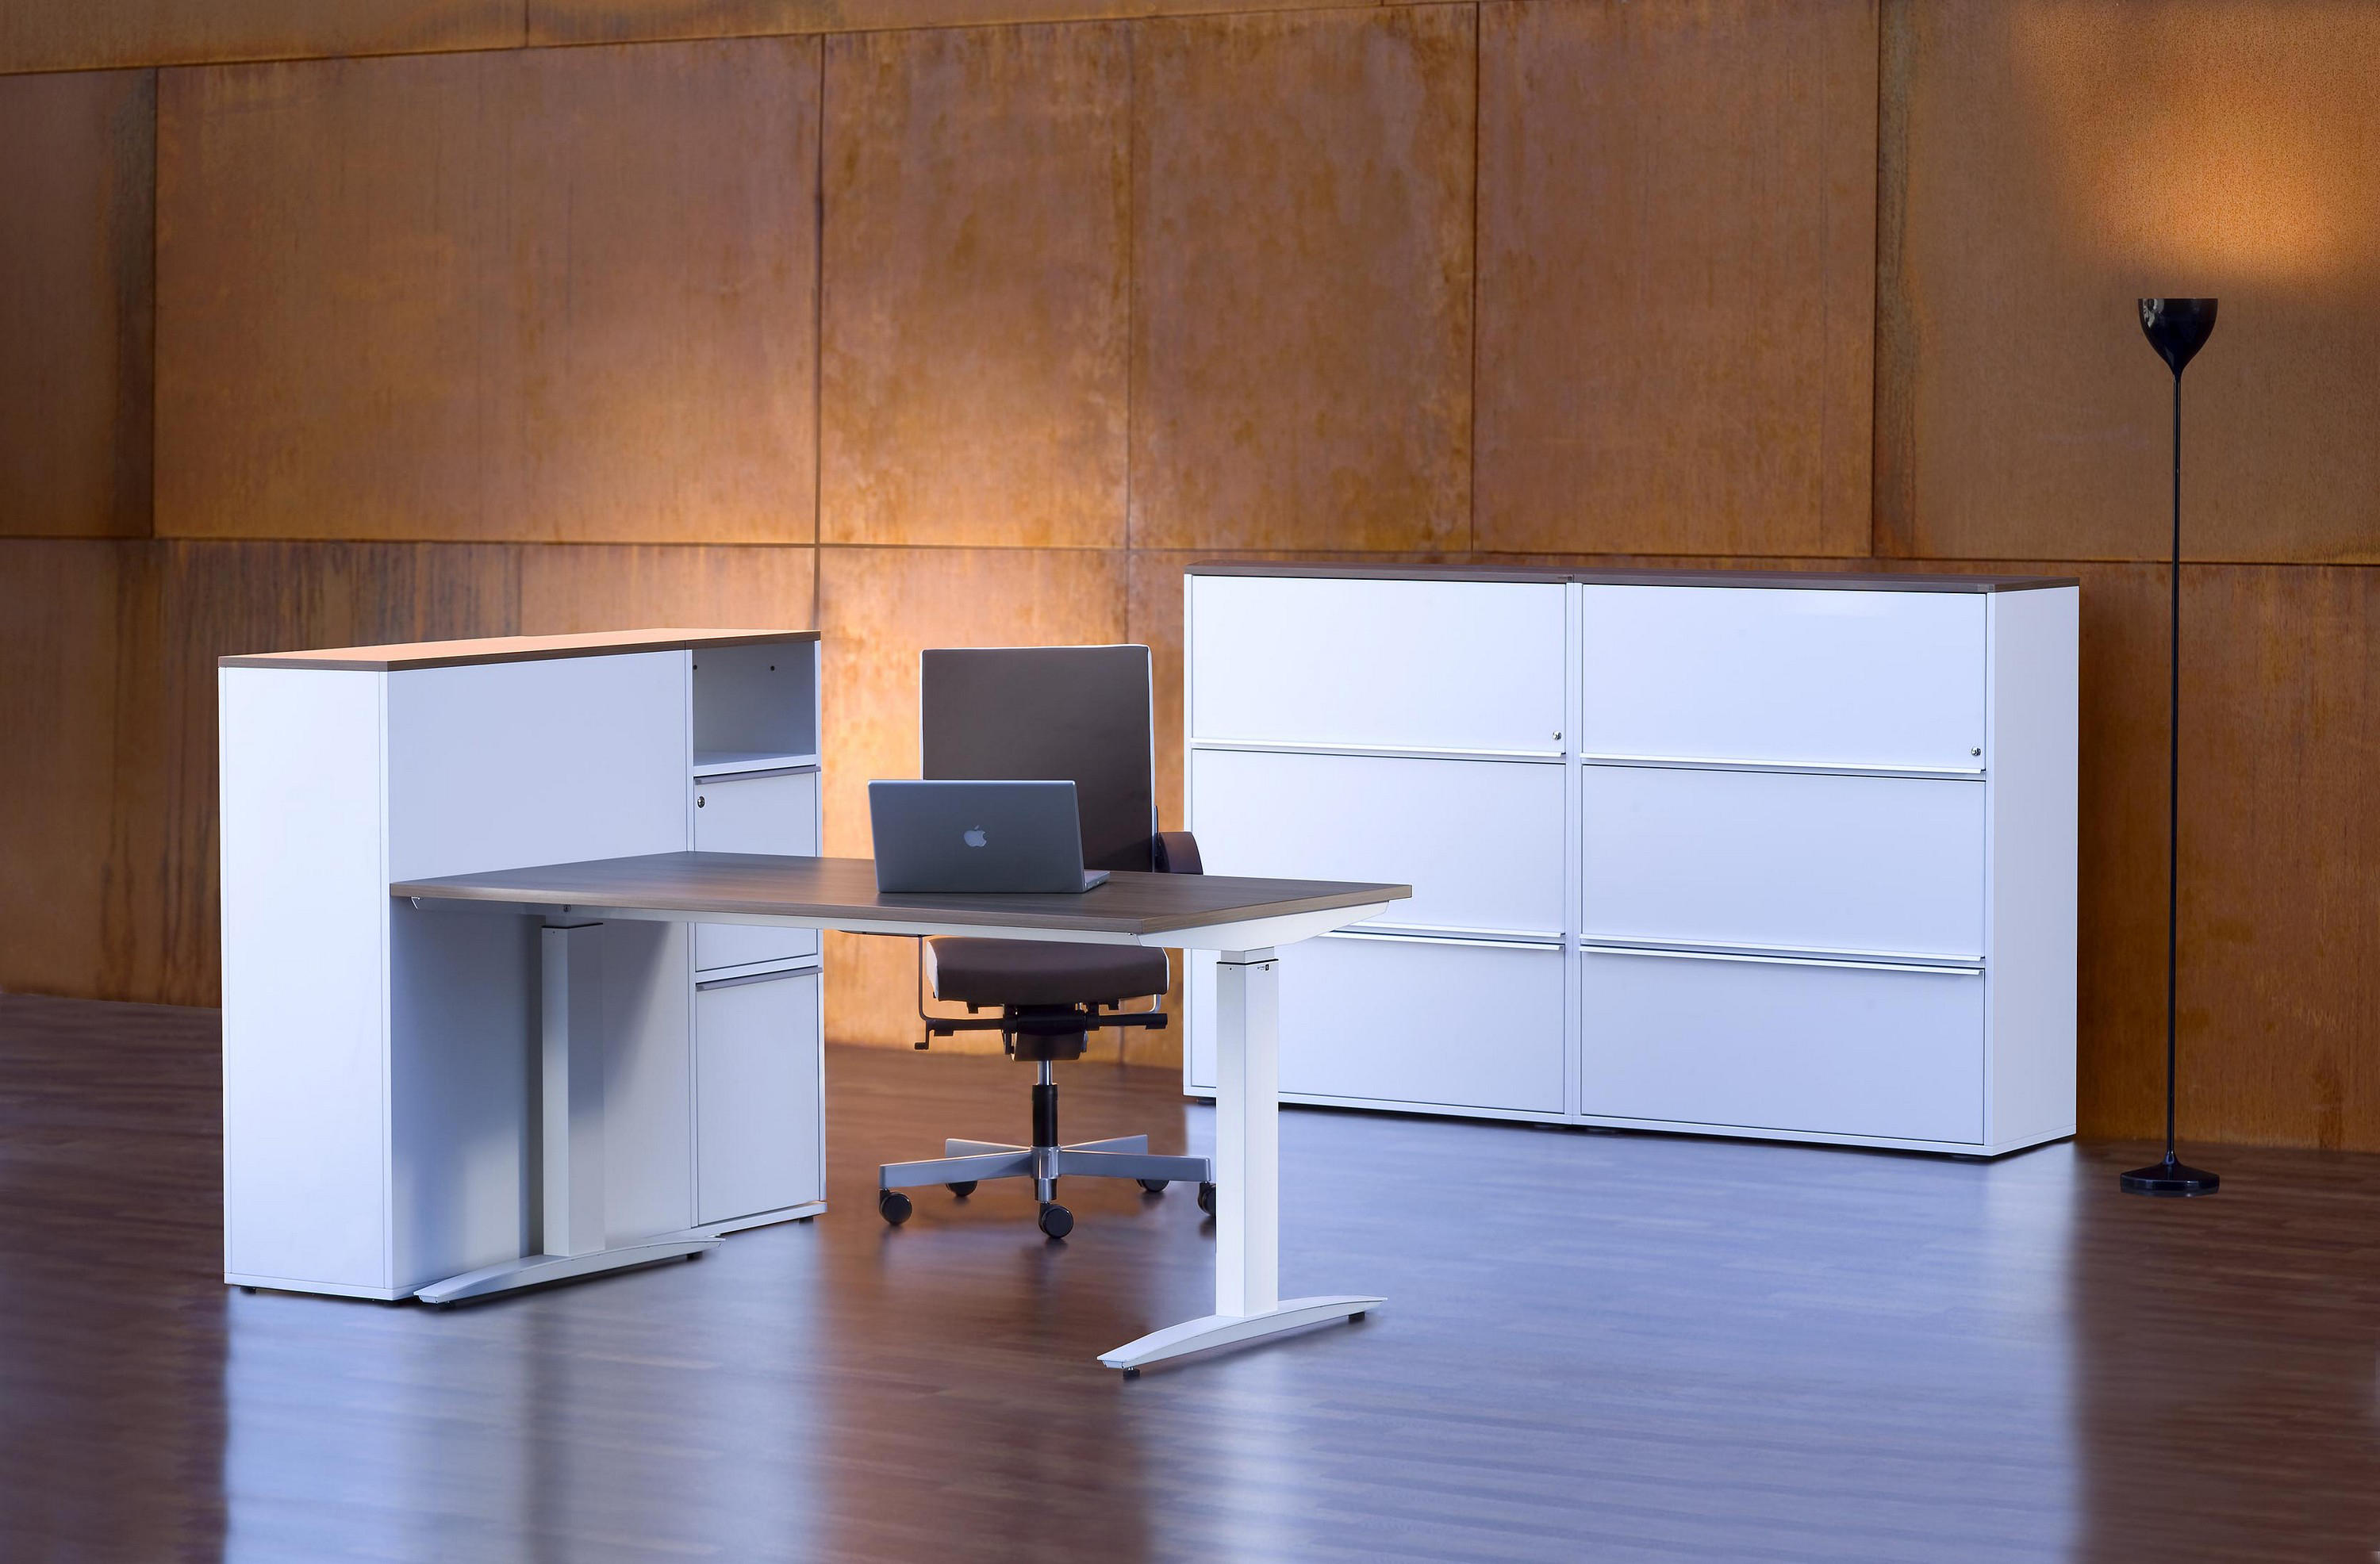 SITAGACTIVE FUNCTIONAL TABLE - Seminar tables from Sitag | Architonic